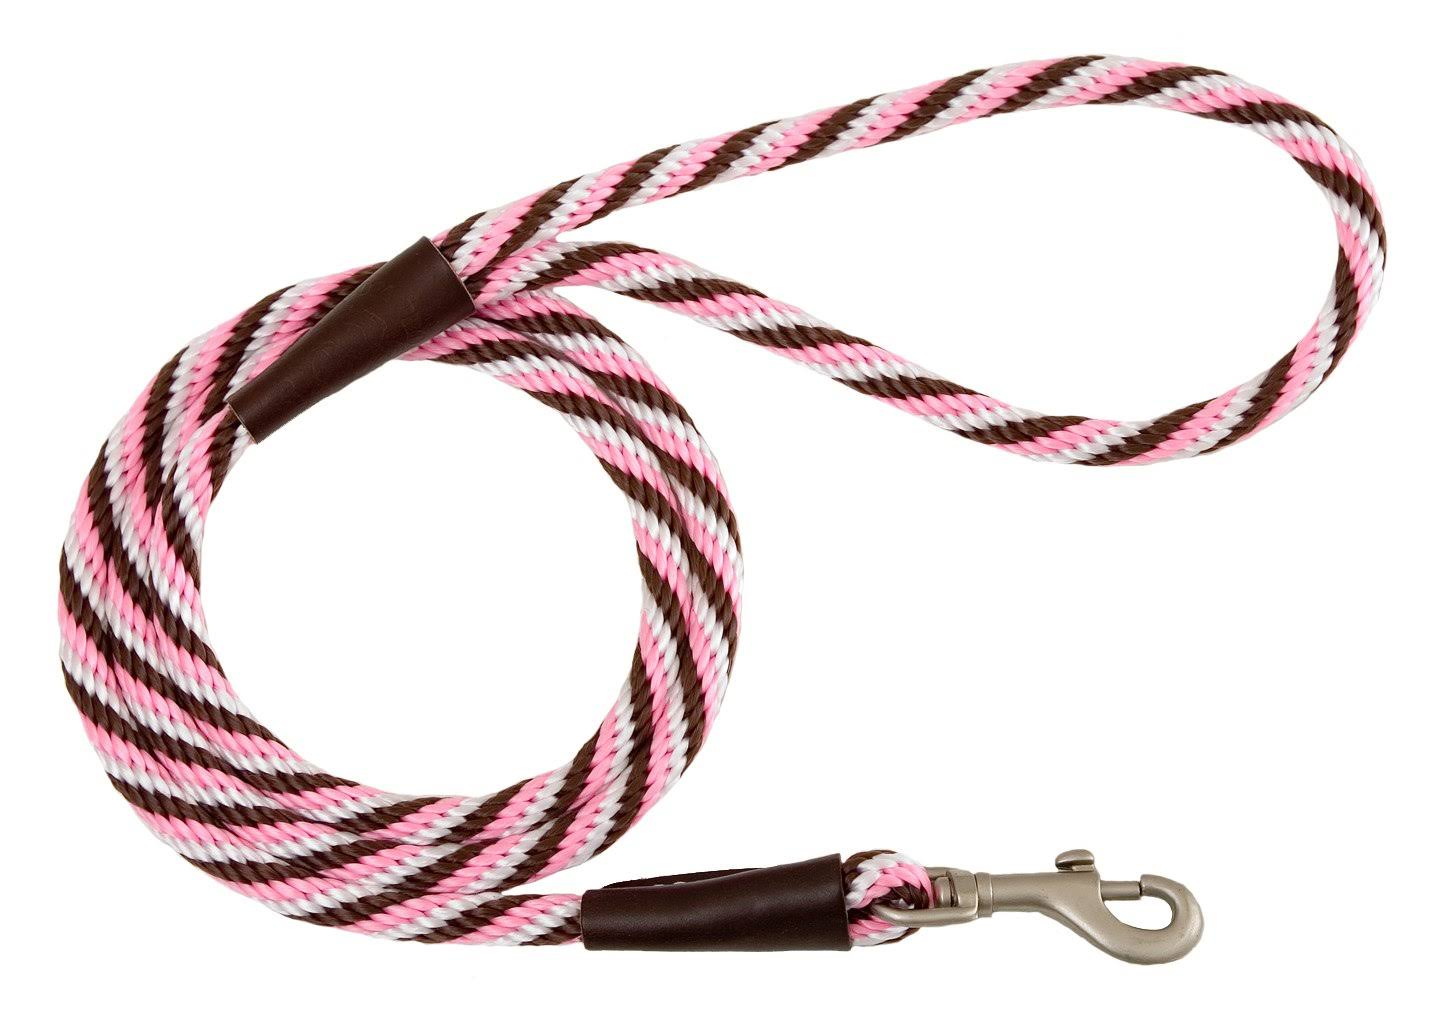 Mendota Twist Snap Leash - Pink Chocolate, 1/2in x 6ft